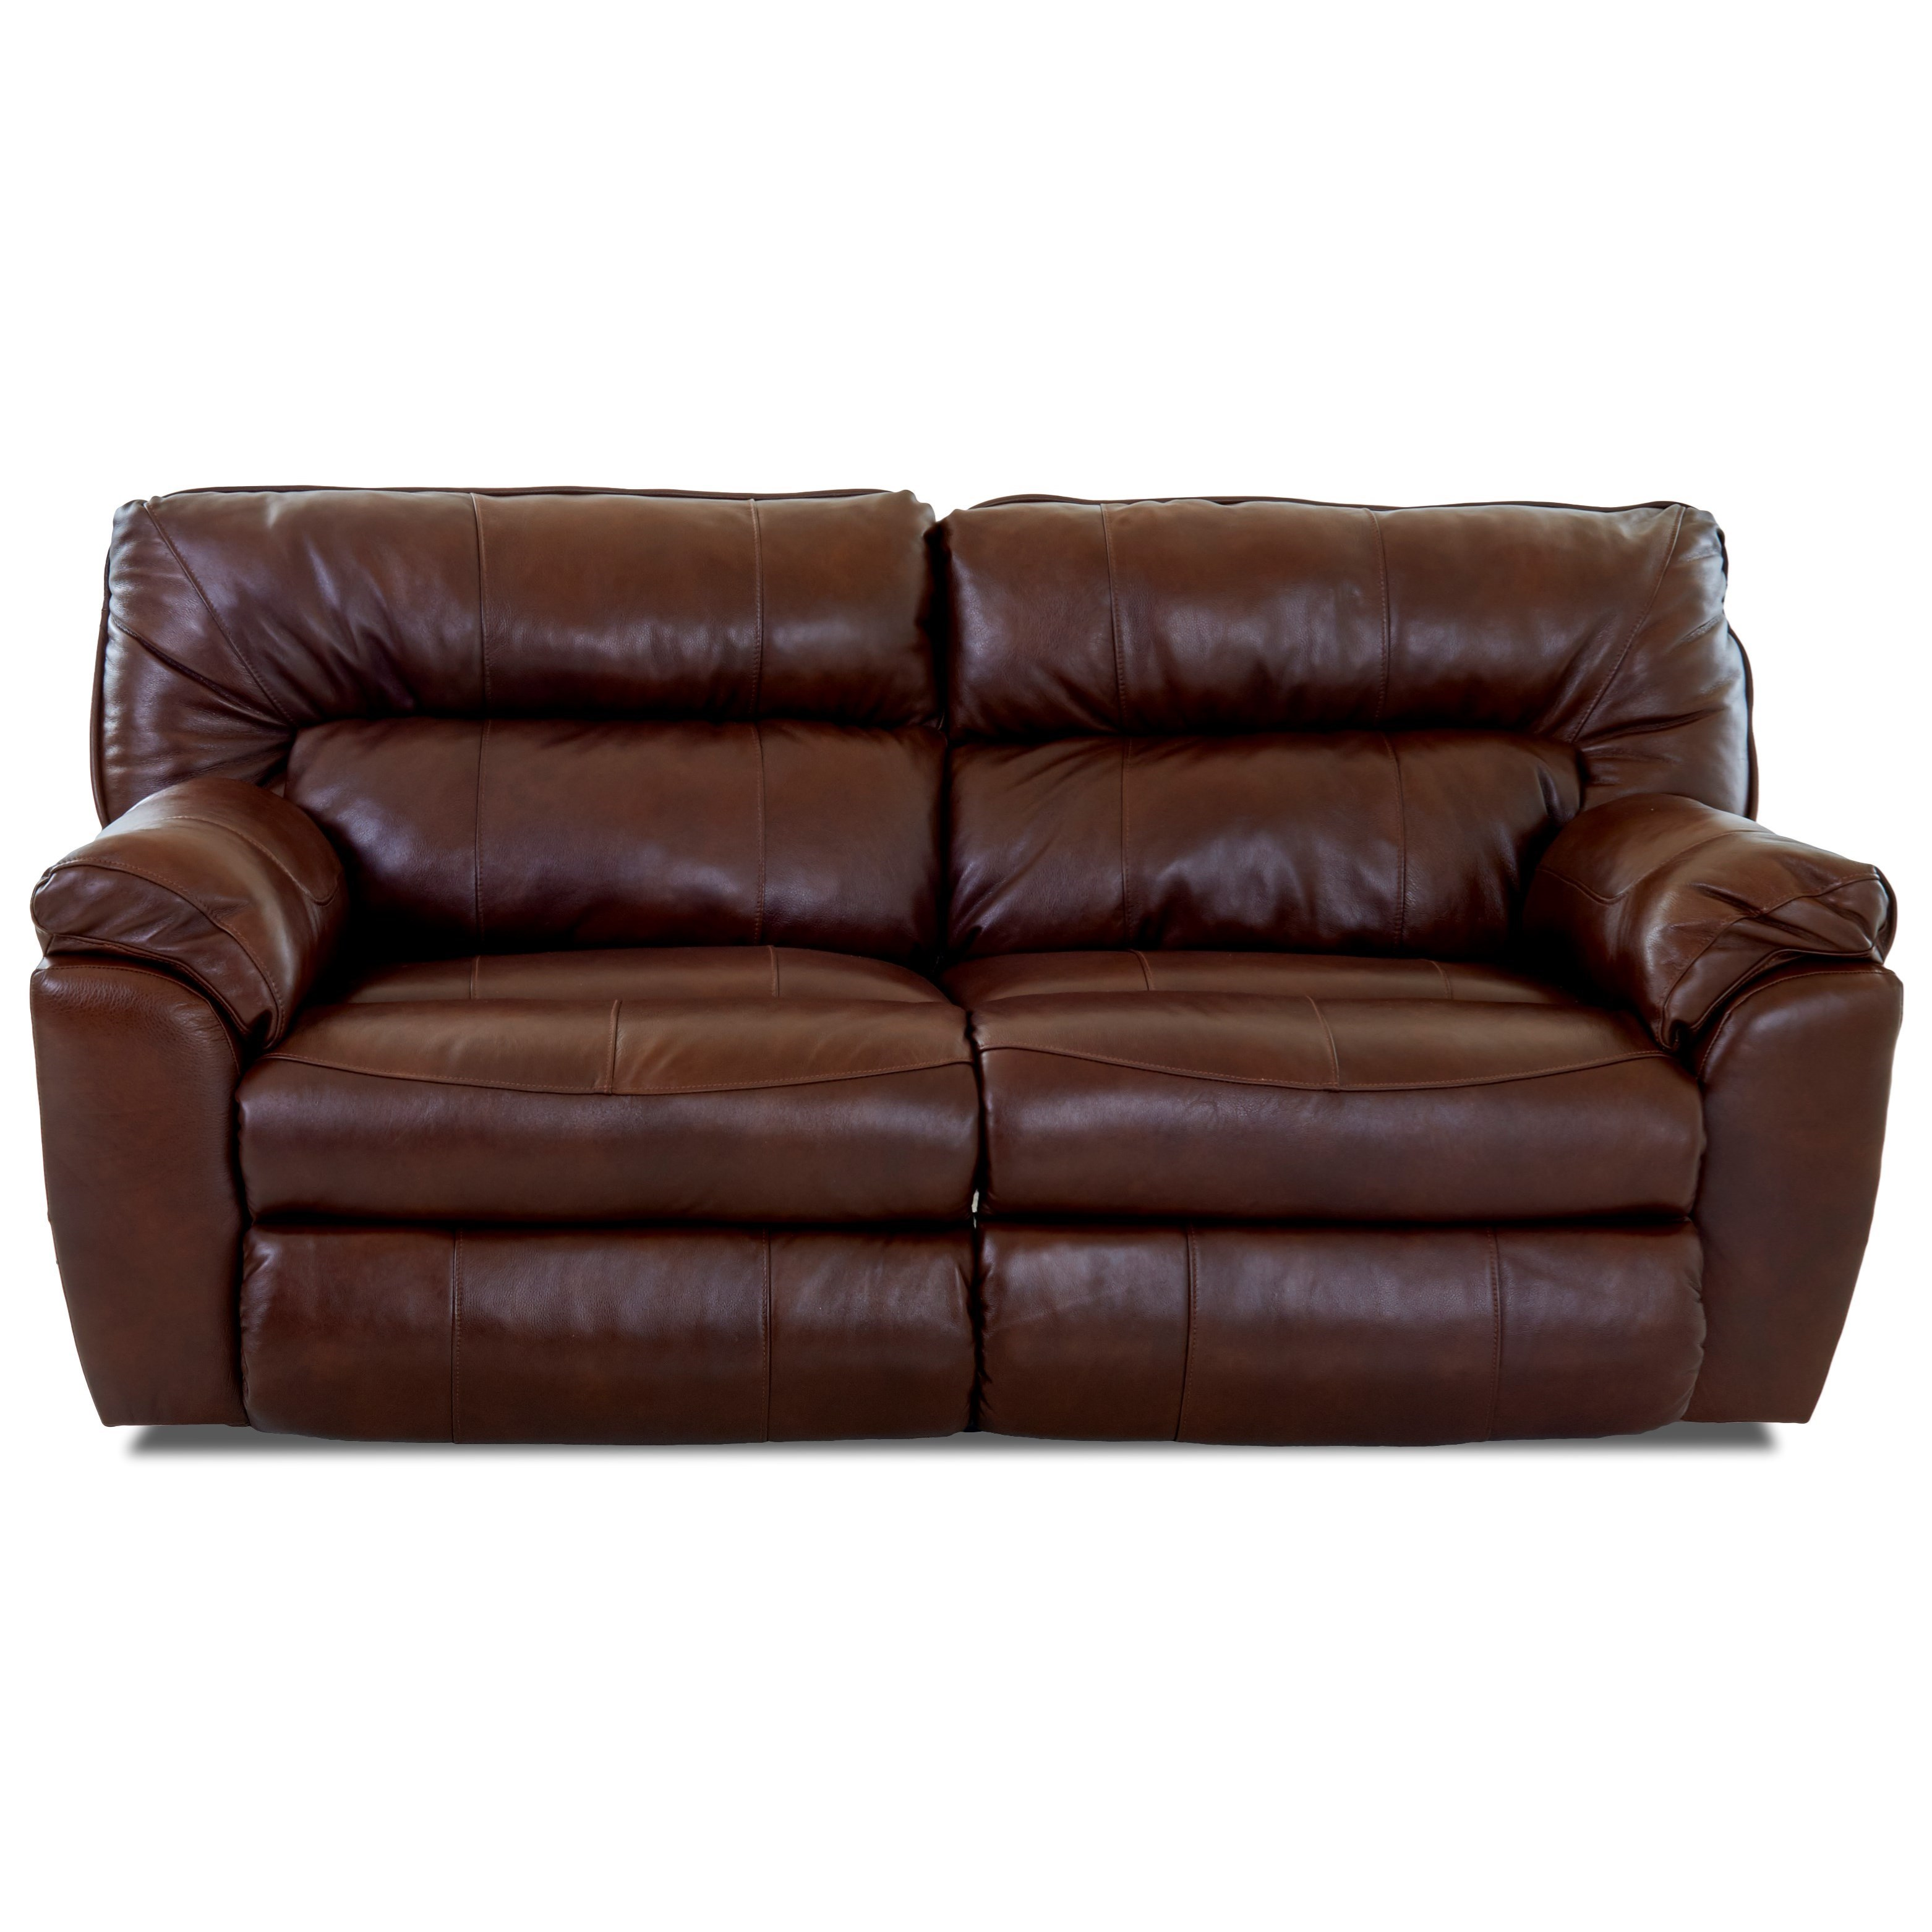 Casual Reclining Love Seat with Pillow Top Arms